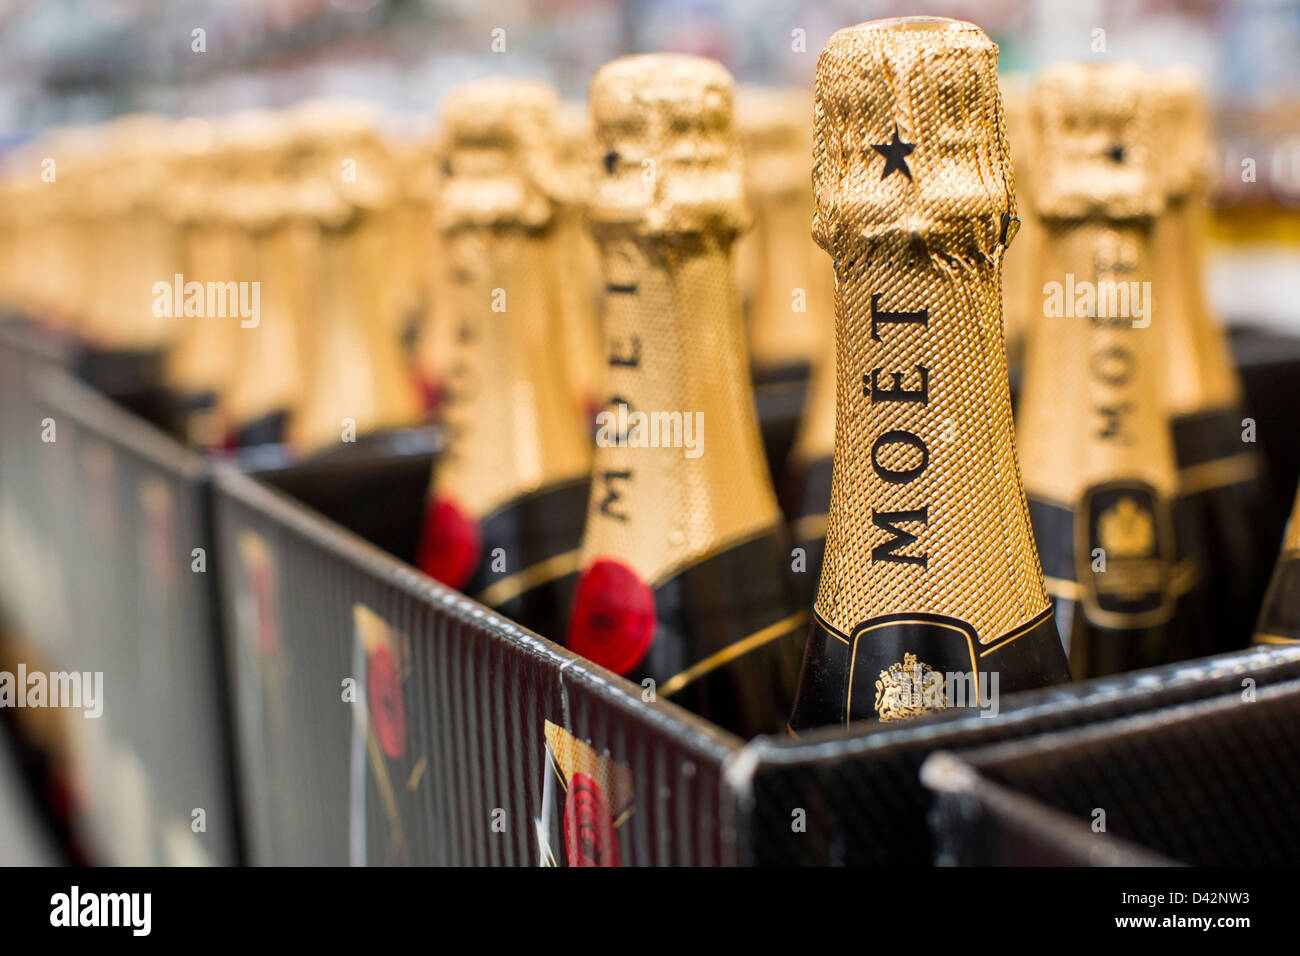 Moet champagne on display at a costco wholesale warehouse club stock moet champagne on display at a costco wholesale warehouse club stock photo 54150799 alamy thecheapjerseys Images